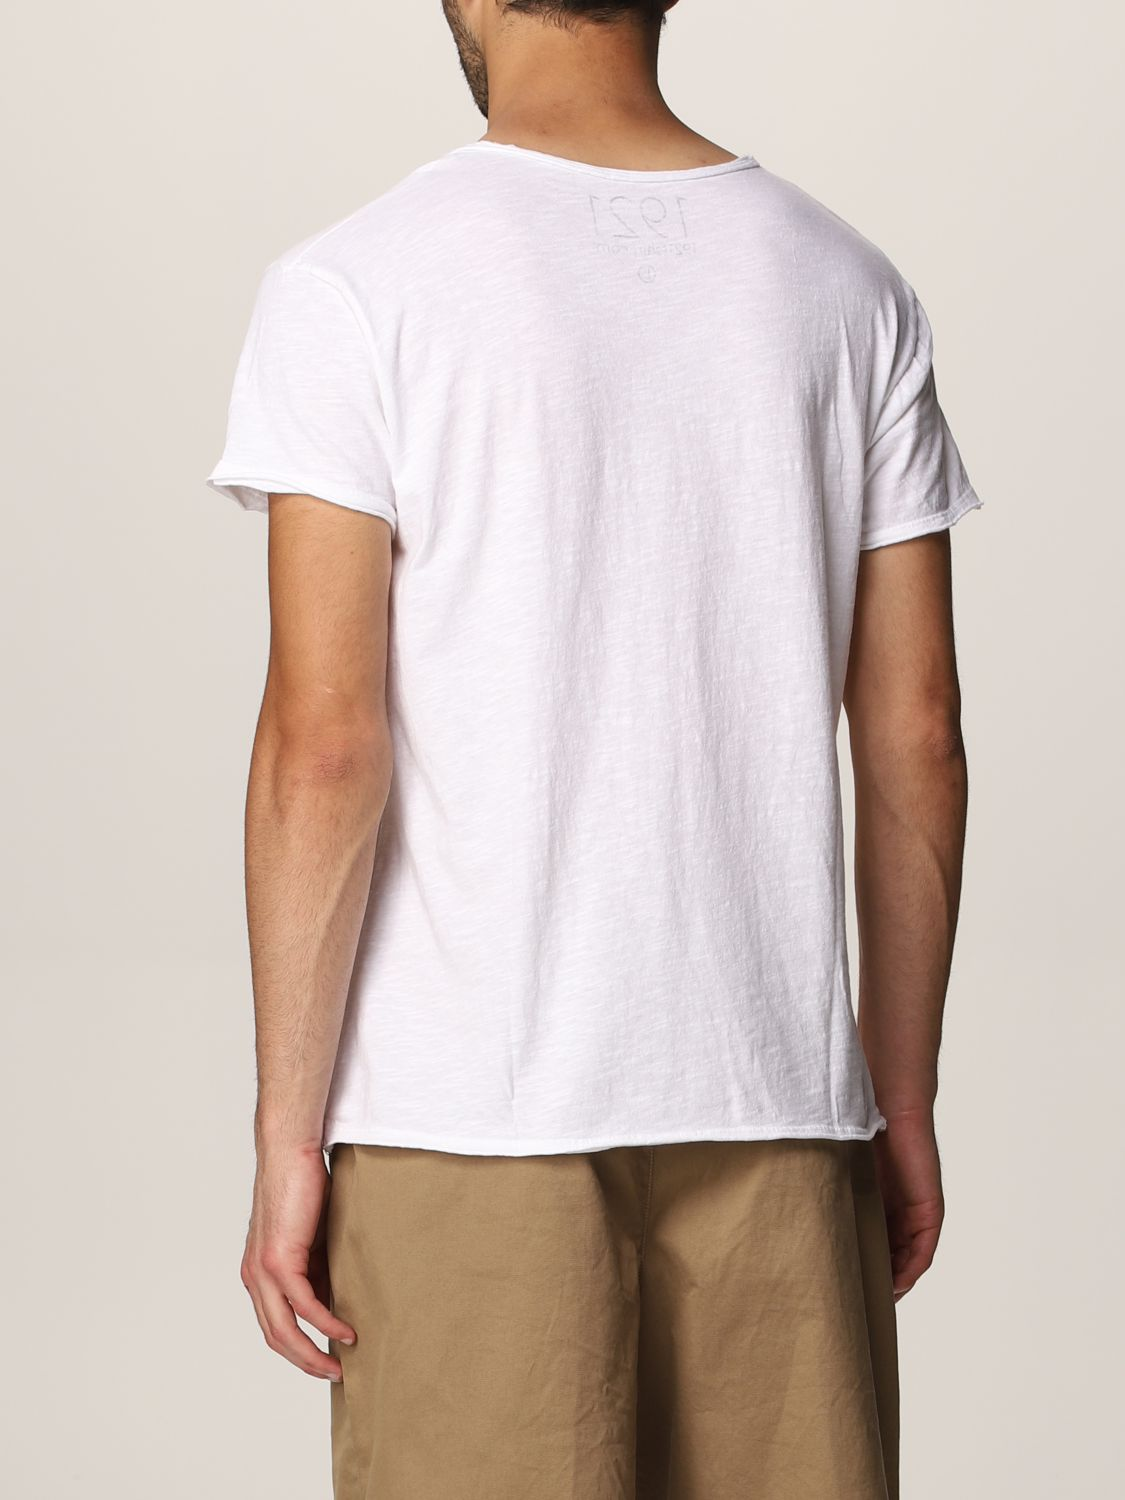 T-shirt 1921: T-shirt 1921 in cotone con stampa bianco 2